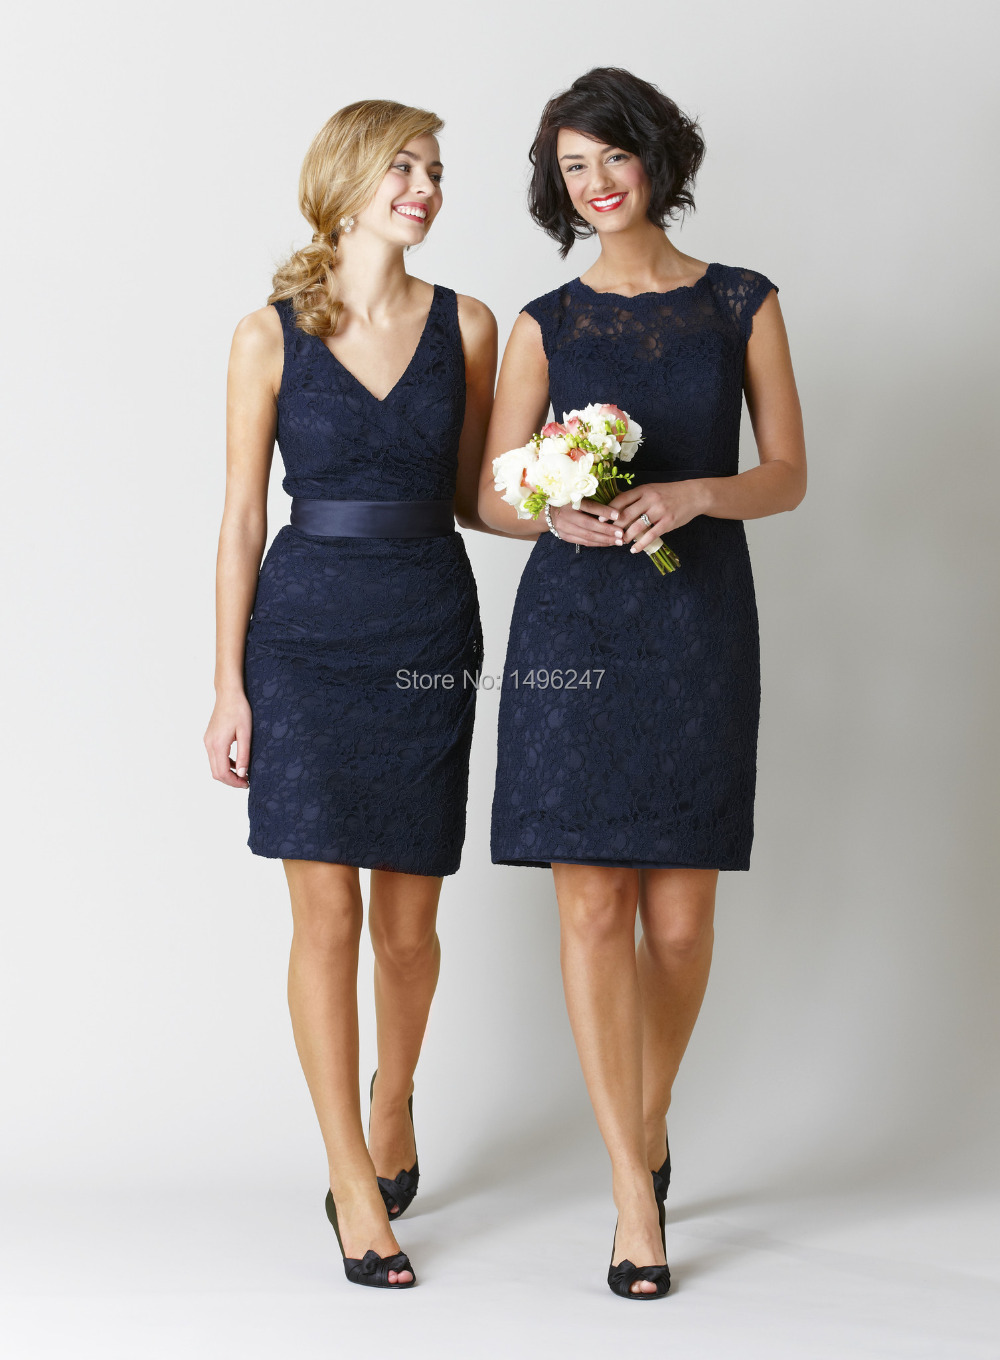 Compare Prices on Buy Formal Dresses- Online Shopping/Buy Low ...